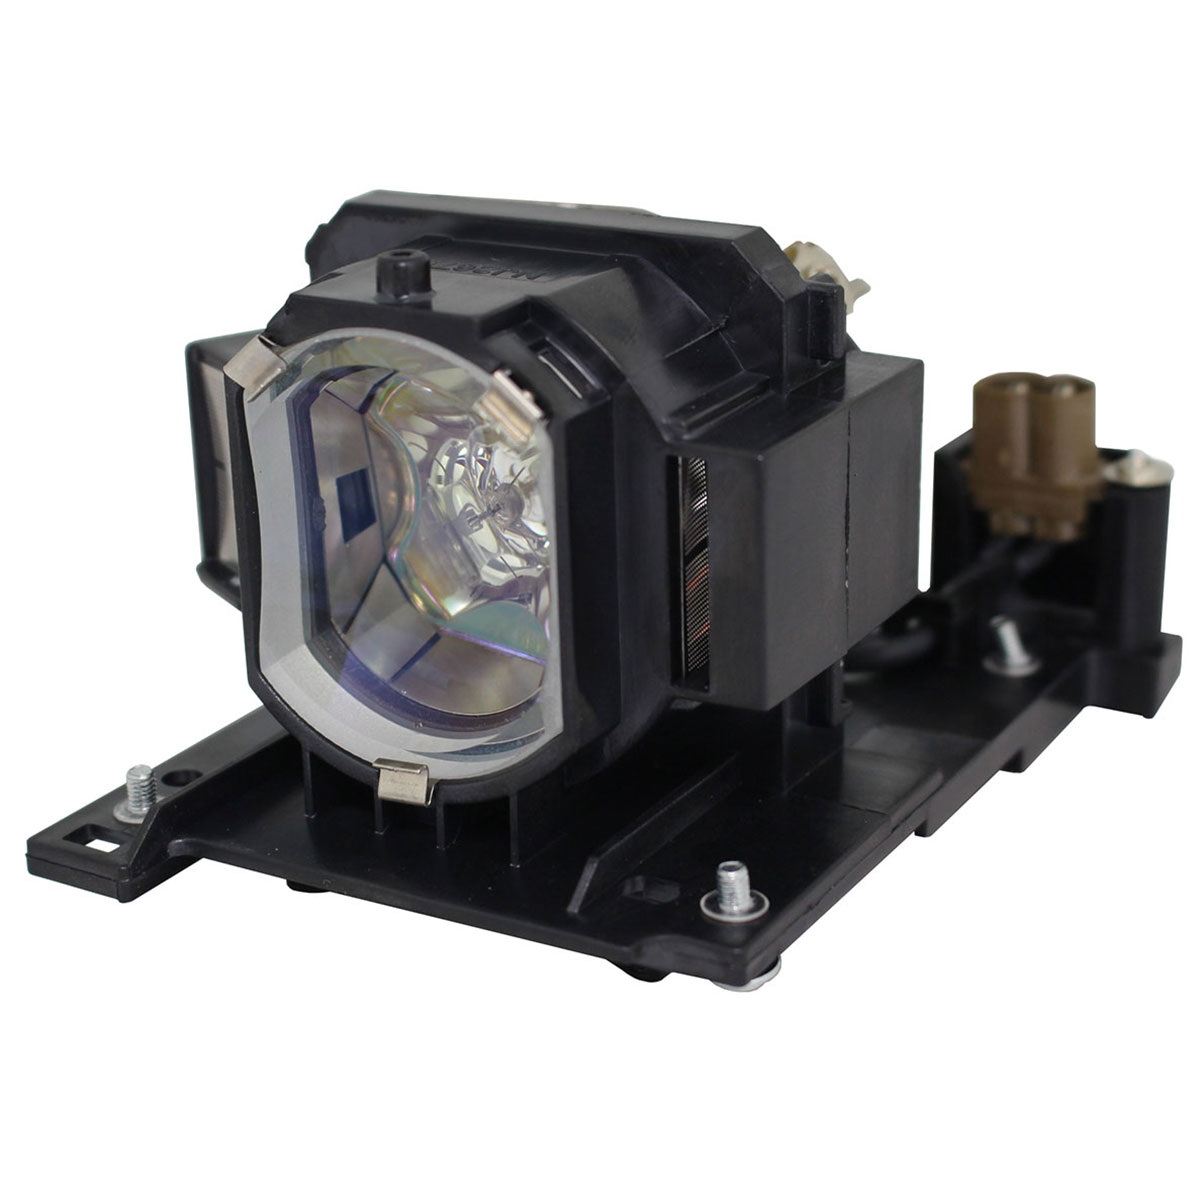 3M X46i Projector Lamp  New UHP Bulb at a Low Price - Projectorquest